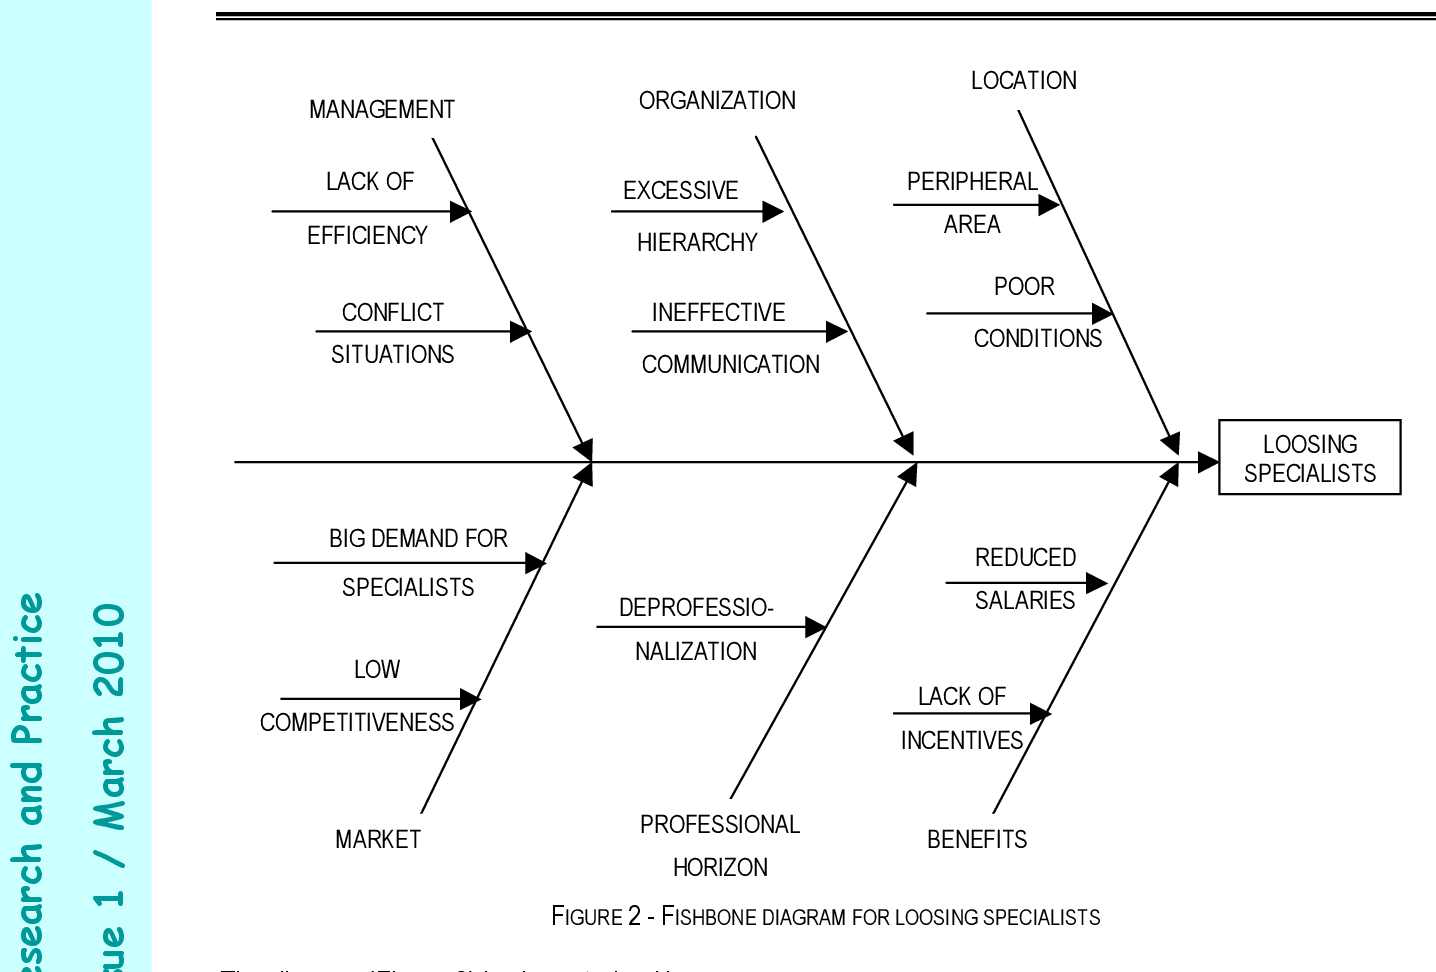 Pdf Application Of Fishbone Diagram To Determine The Risk Of An Event With Multiple Causes Semantic Scholar